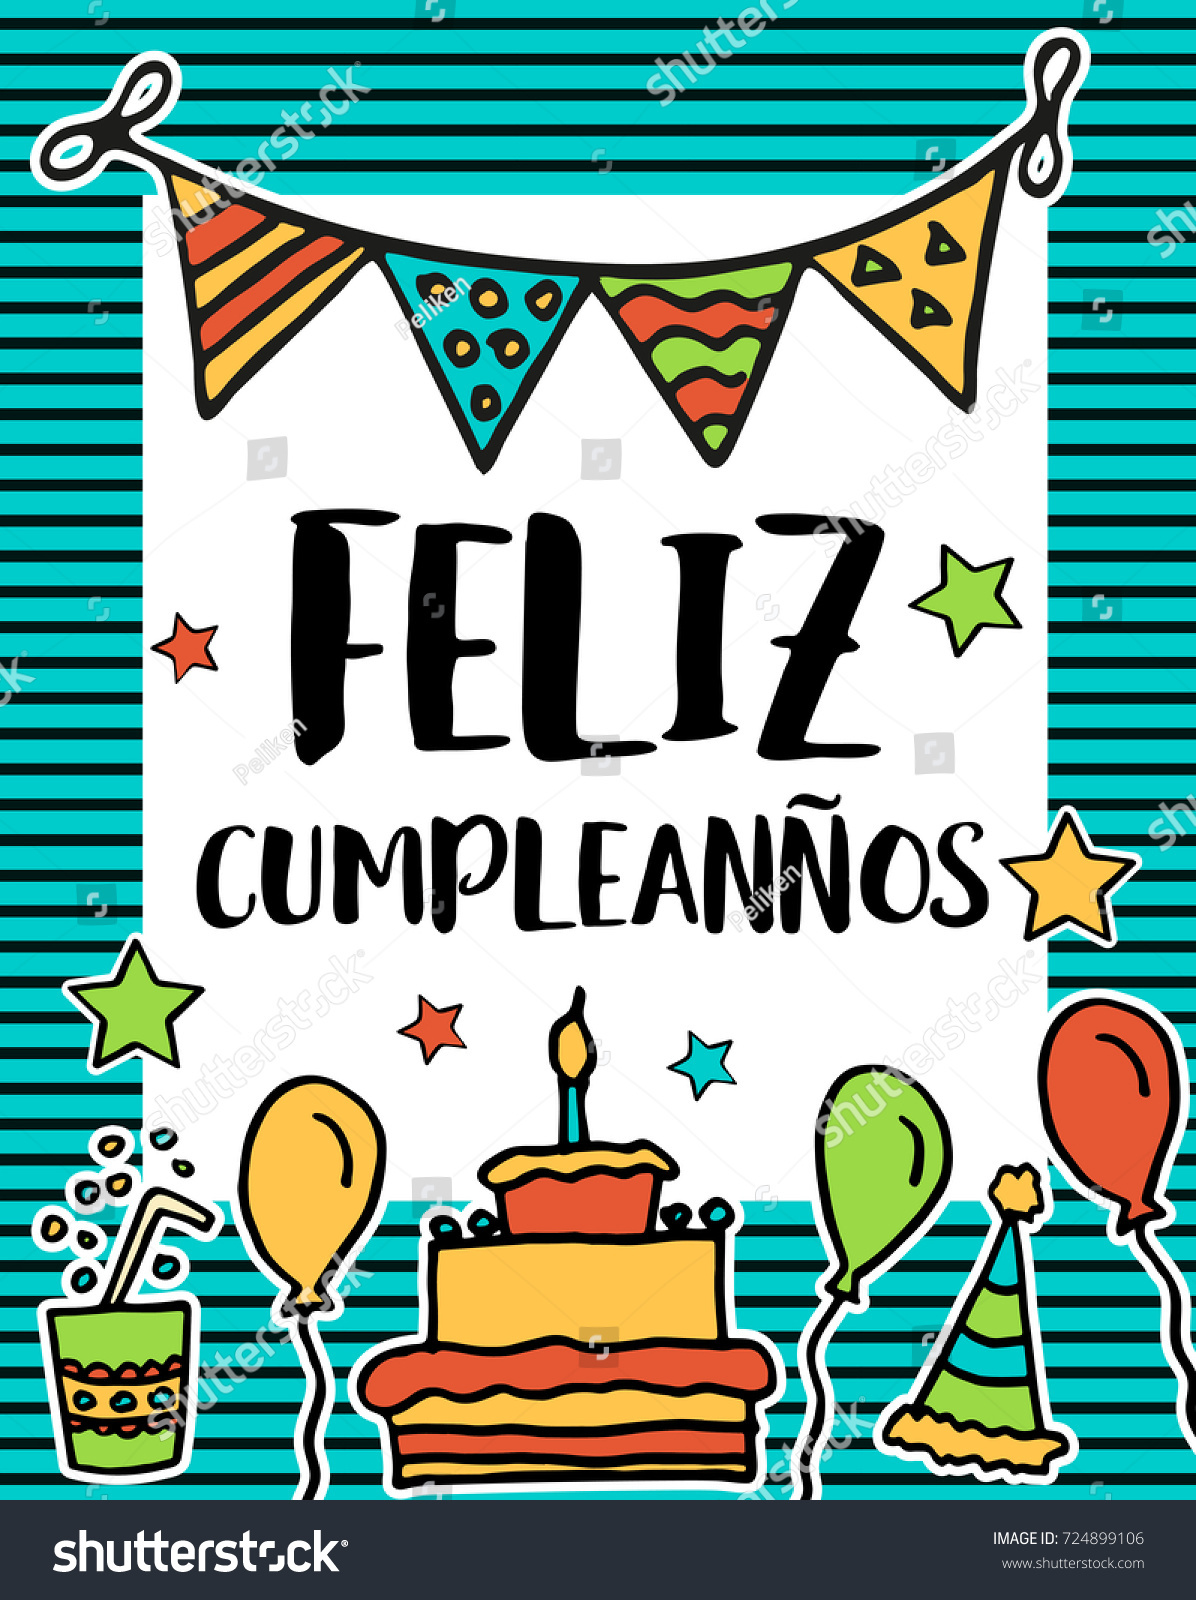 Feliz Cumpleanos Happy Birthday Greeting Written Stock Illustration